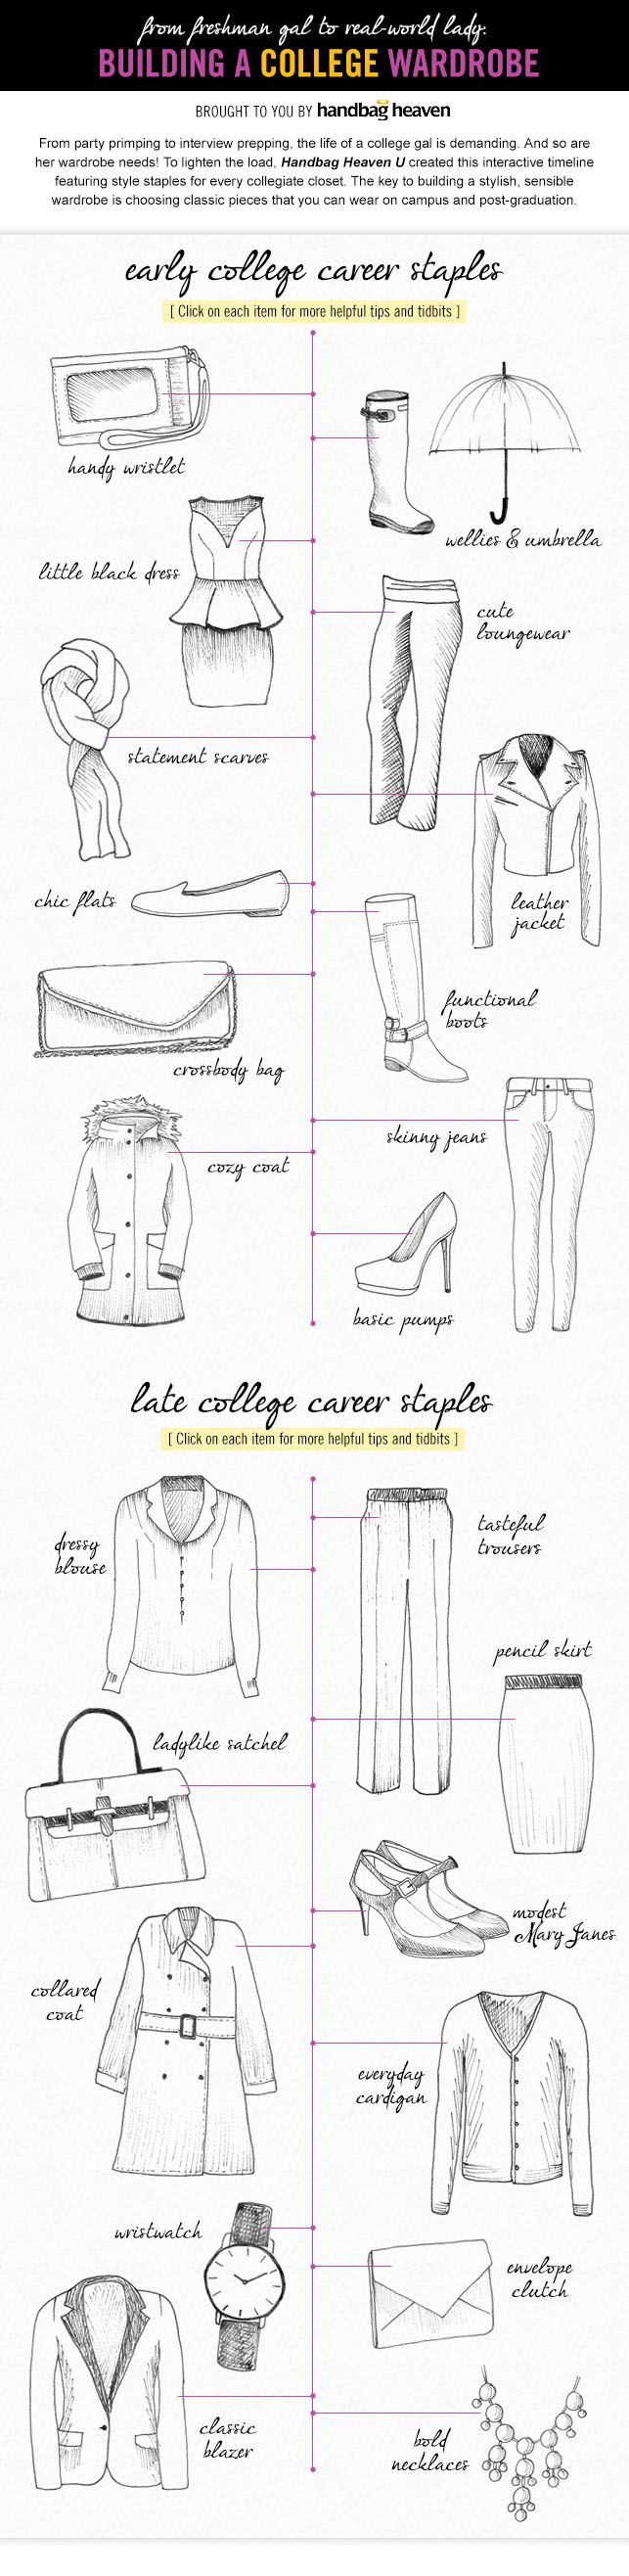 How to build a college wardrobe via @handbagheaven http://www.handbagheaven.com/style-guide/handbag-heaven-university